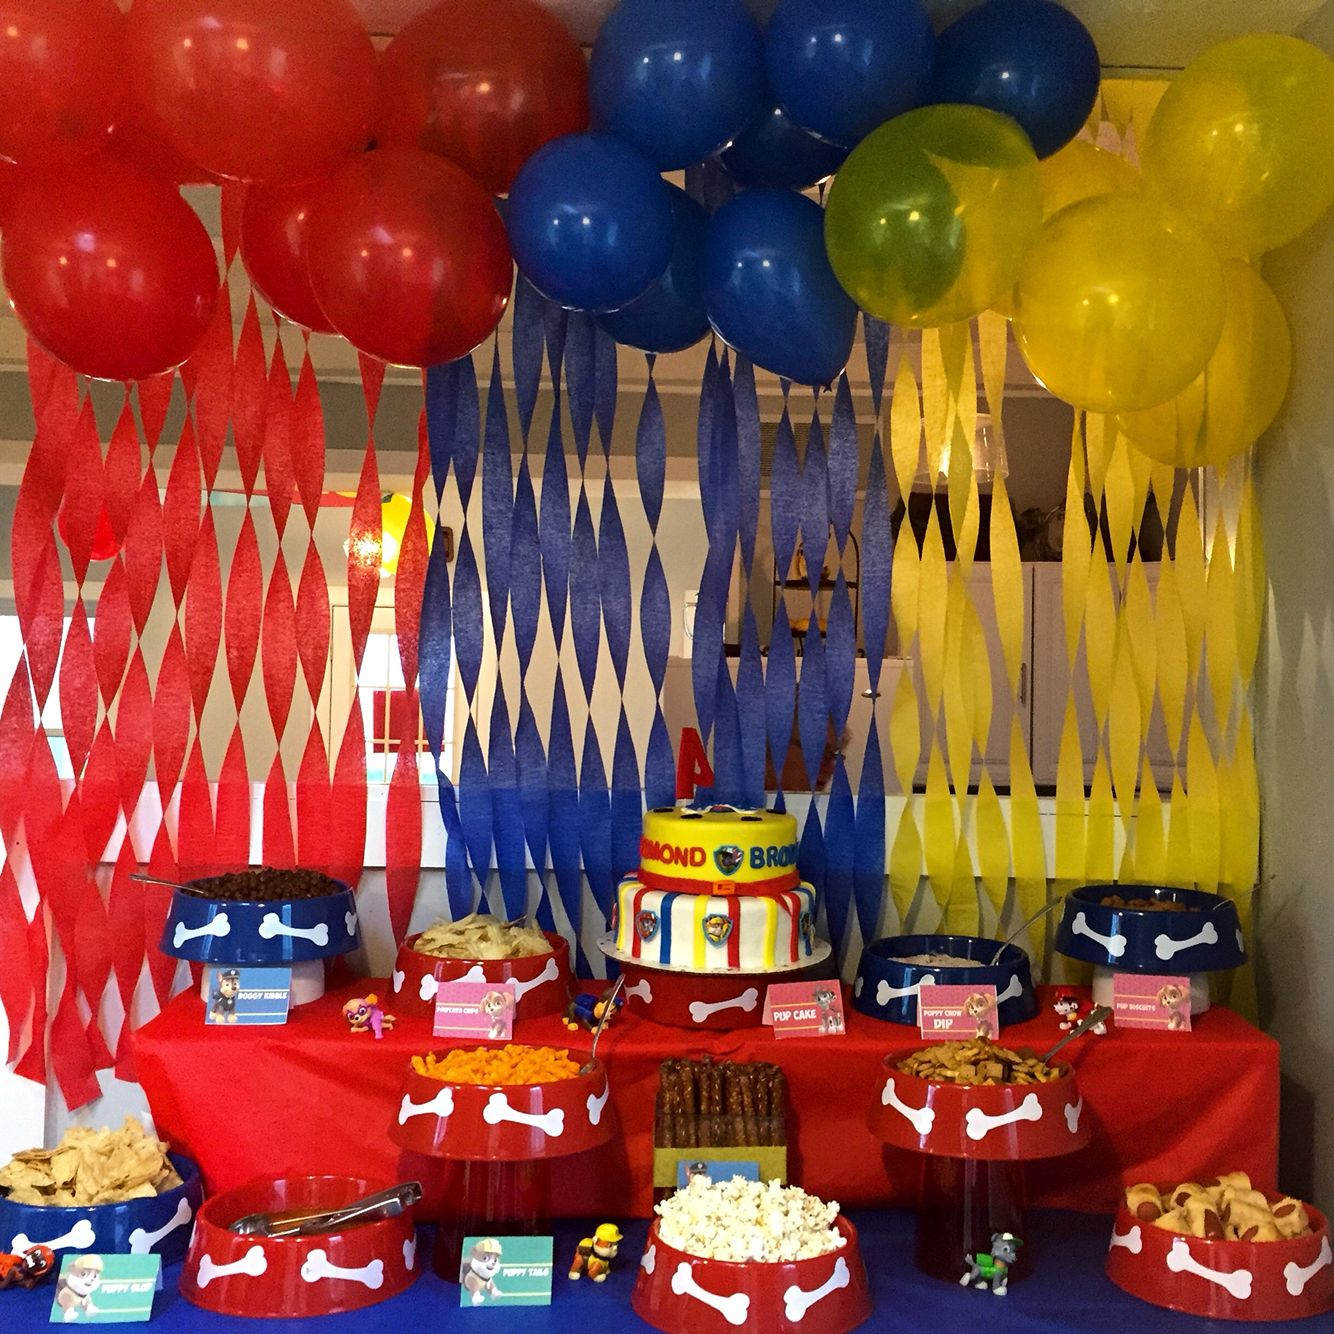 Dog Birthday Decorations Paw Patrol Birthday Party With Dog Bowls And Dog Themed Food